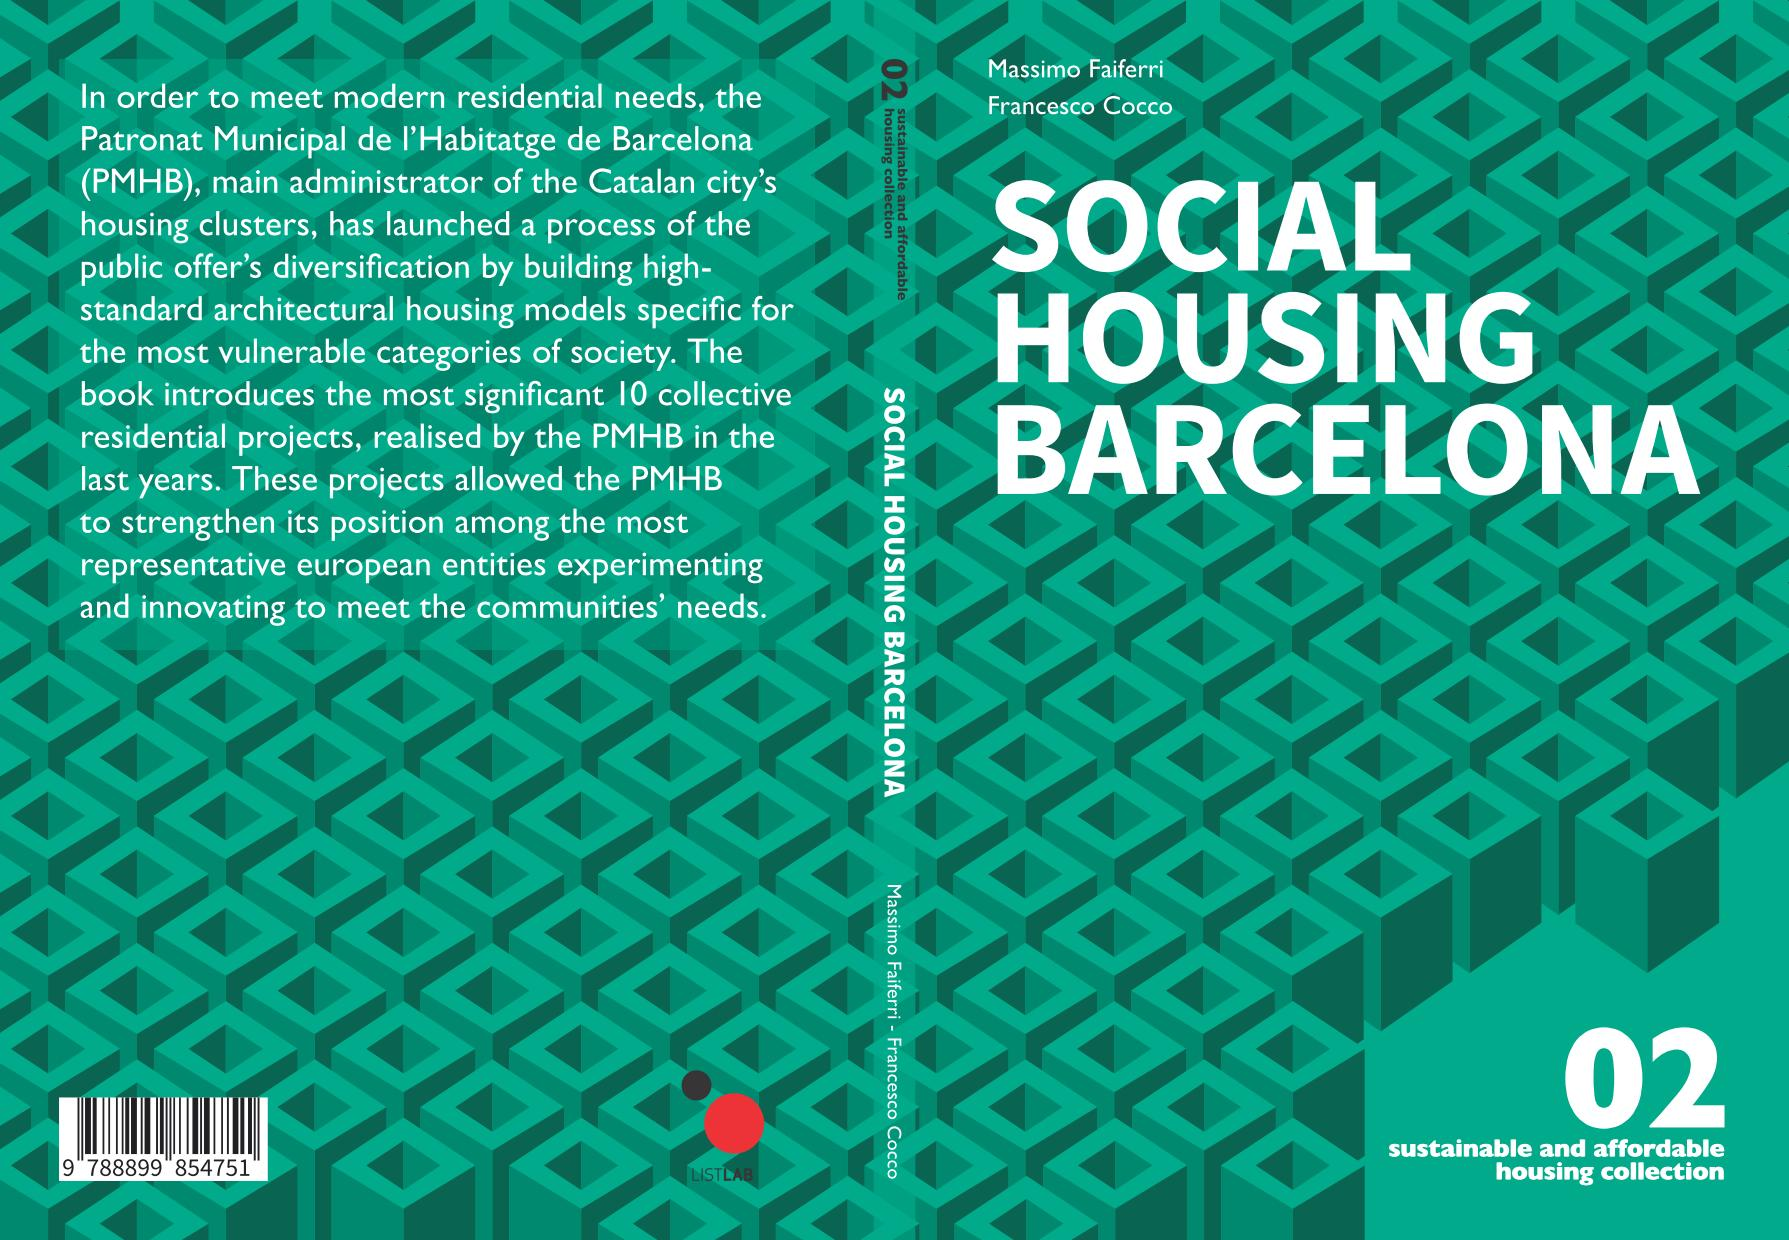 SOCIAL HOUSING BARCELONA